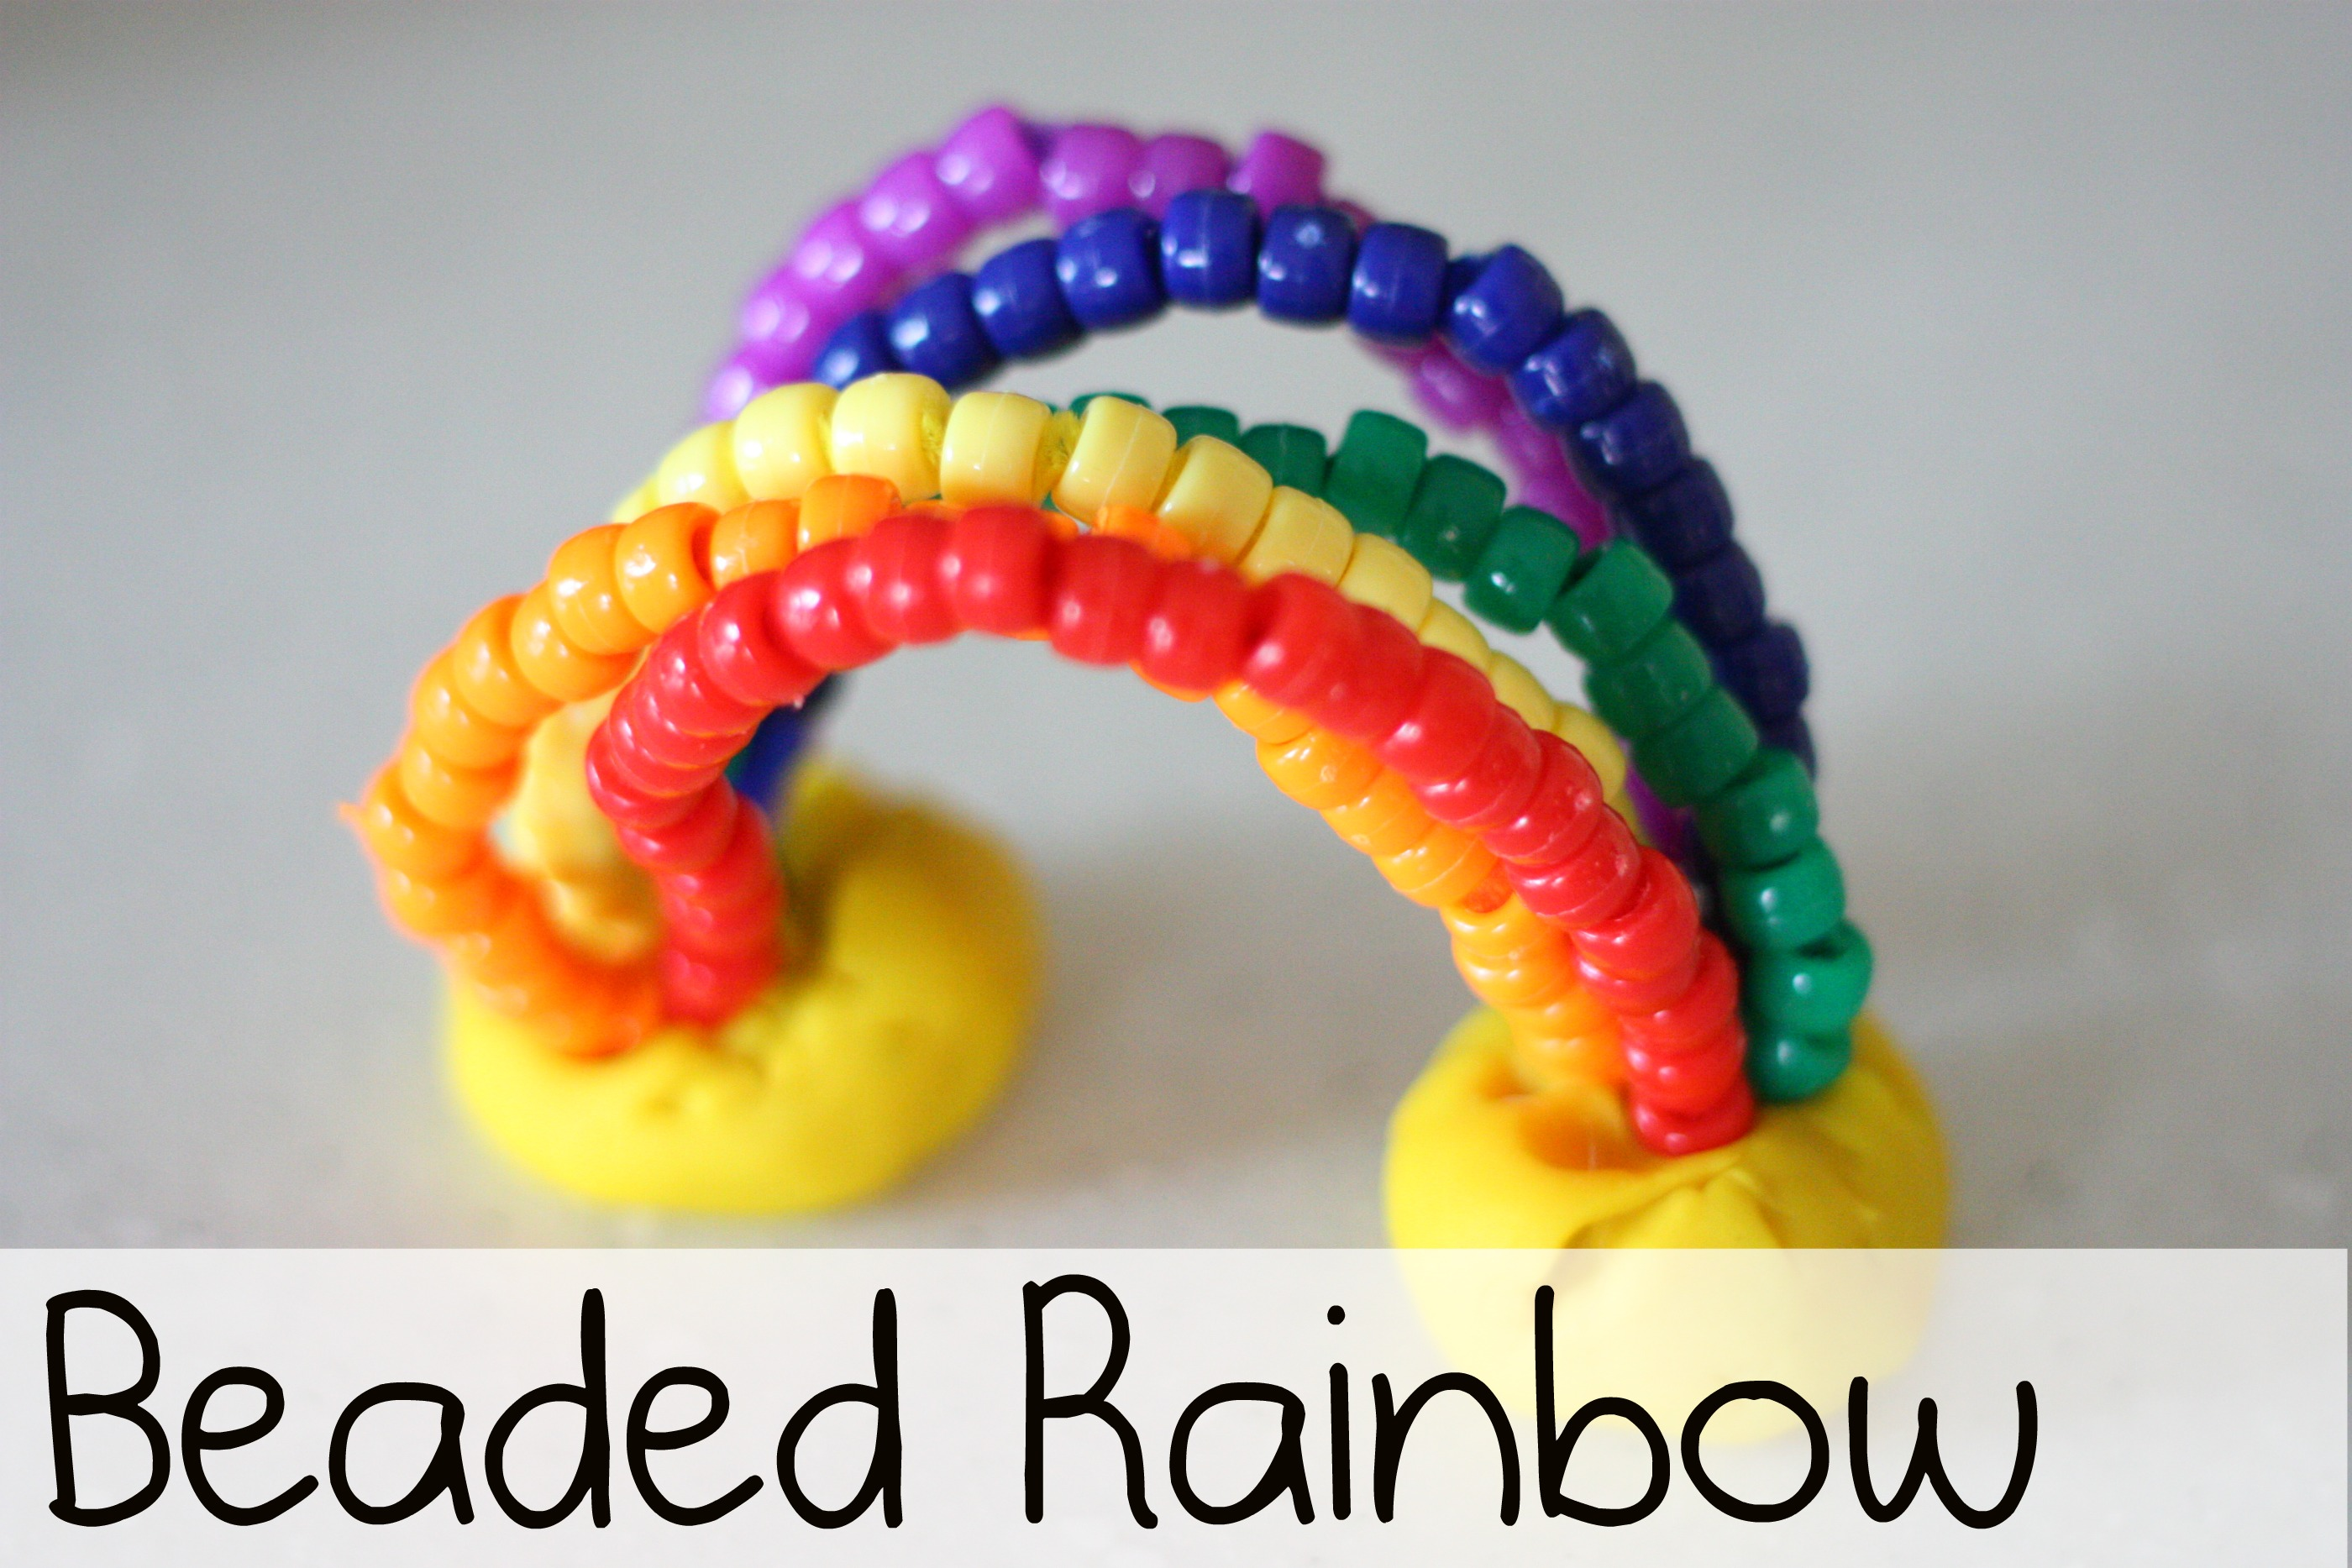 13d87cff1 Beaded Rainbow - I Can Teach My Child!